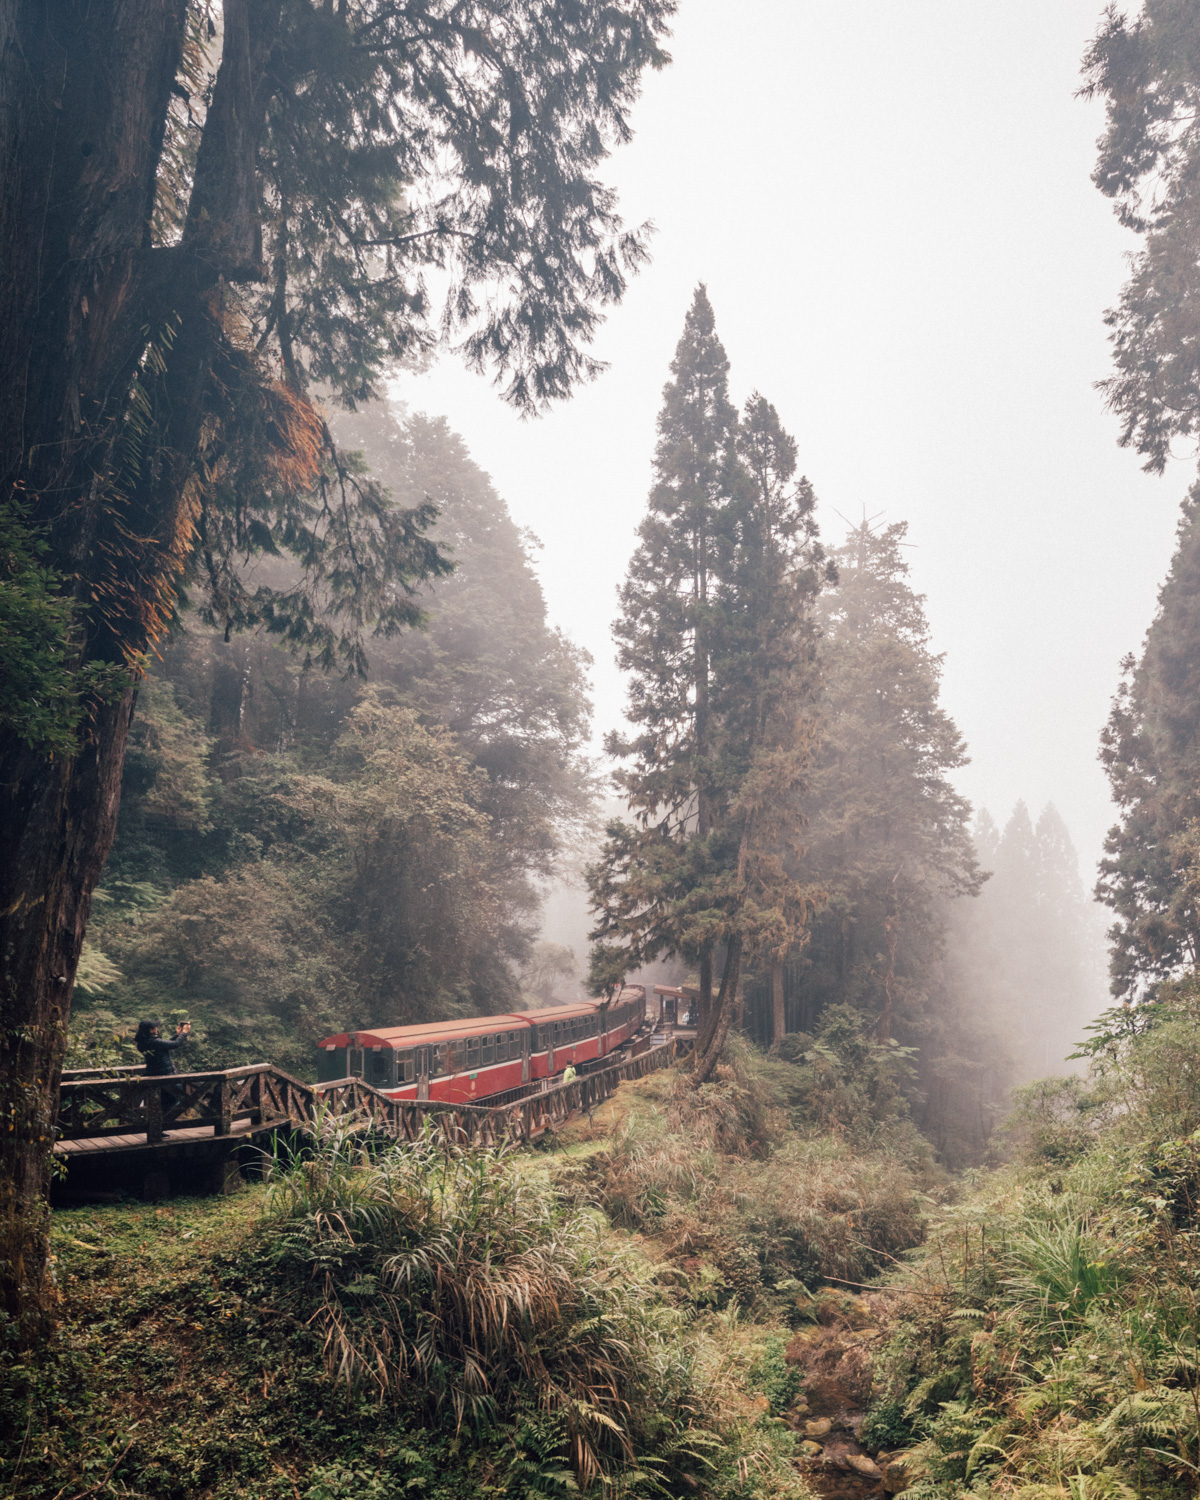 The misty forest of Alishan